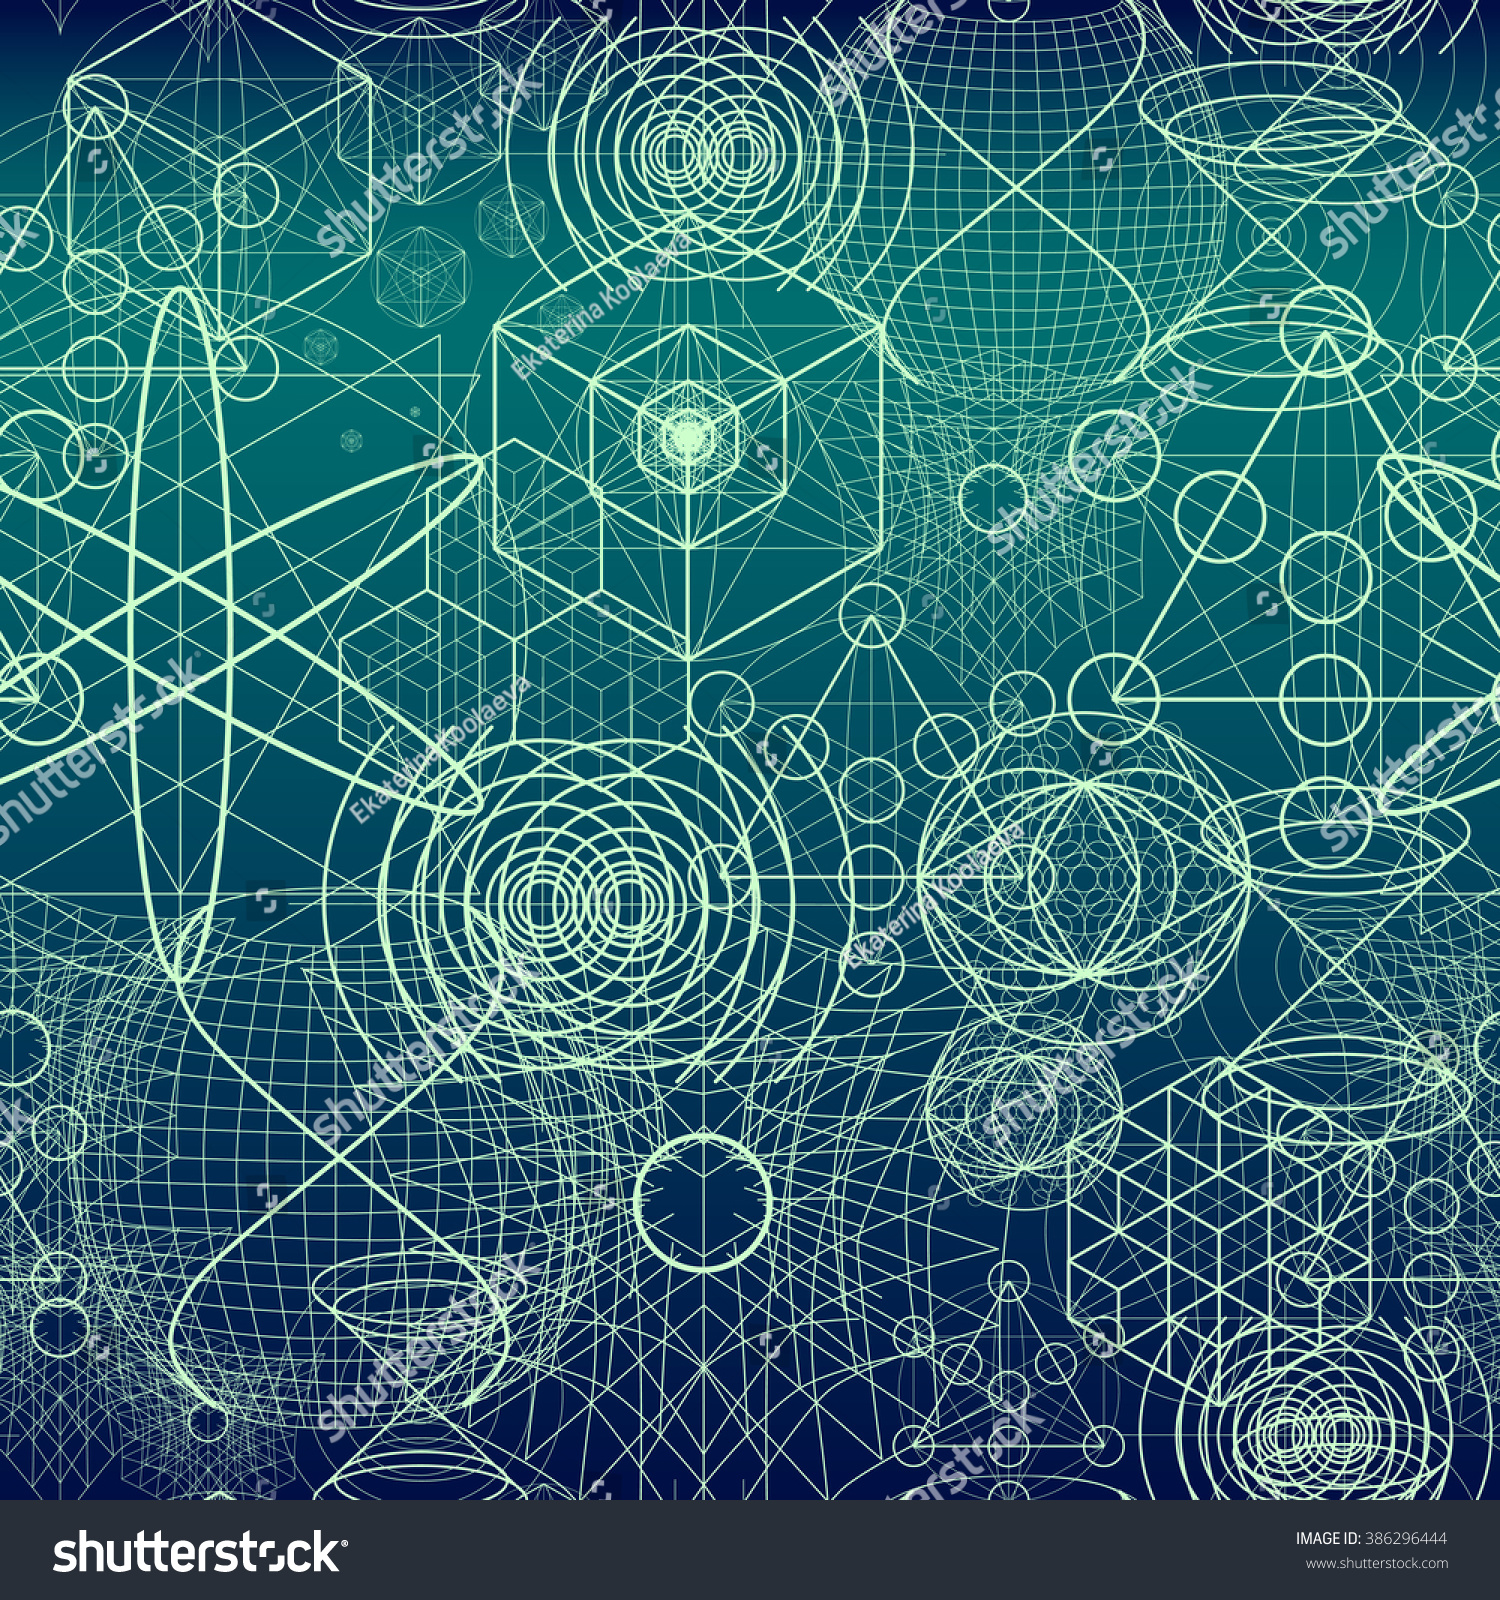 sacred geometry symbols elements wallpaper seamless stock